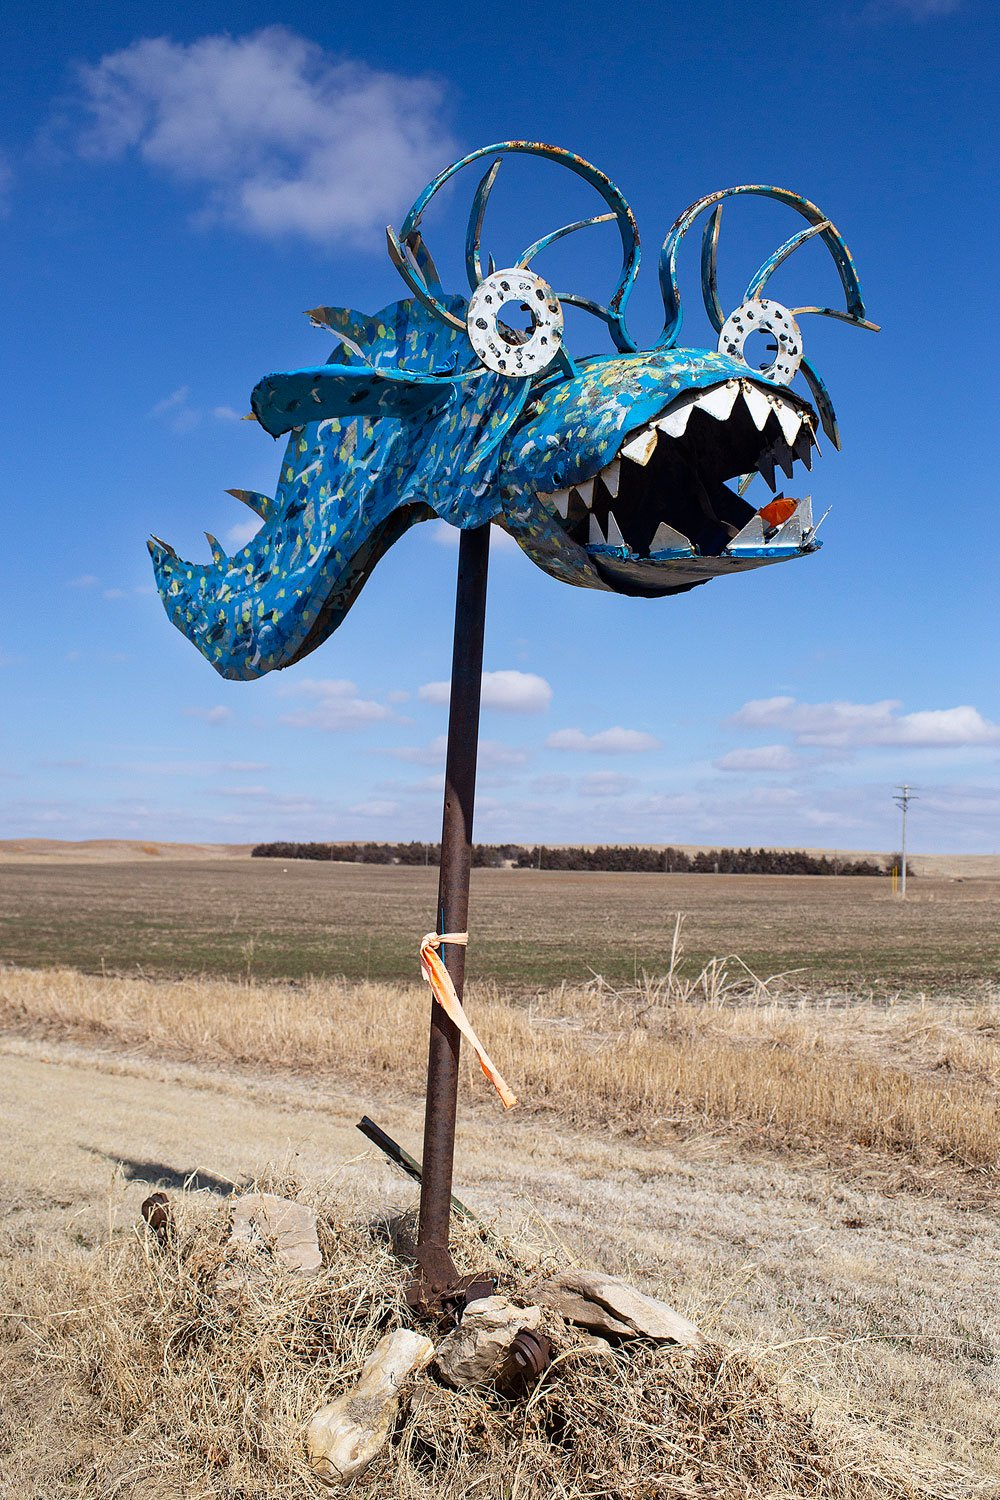 Land Shark, one of the creations along the Open Range Zoo near Lincoln, Kansas (Photo by Kris Heinze)